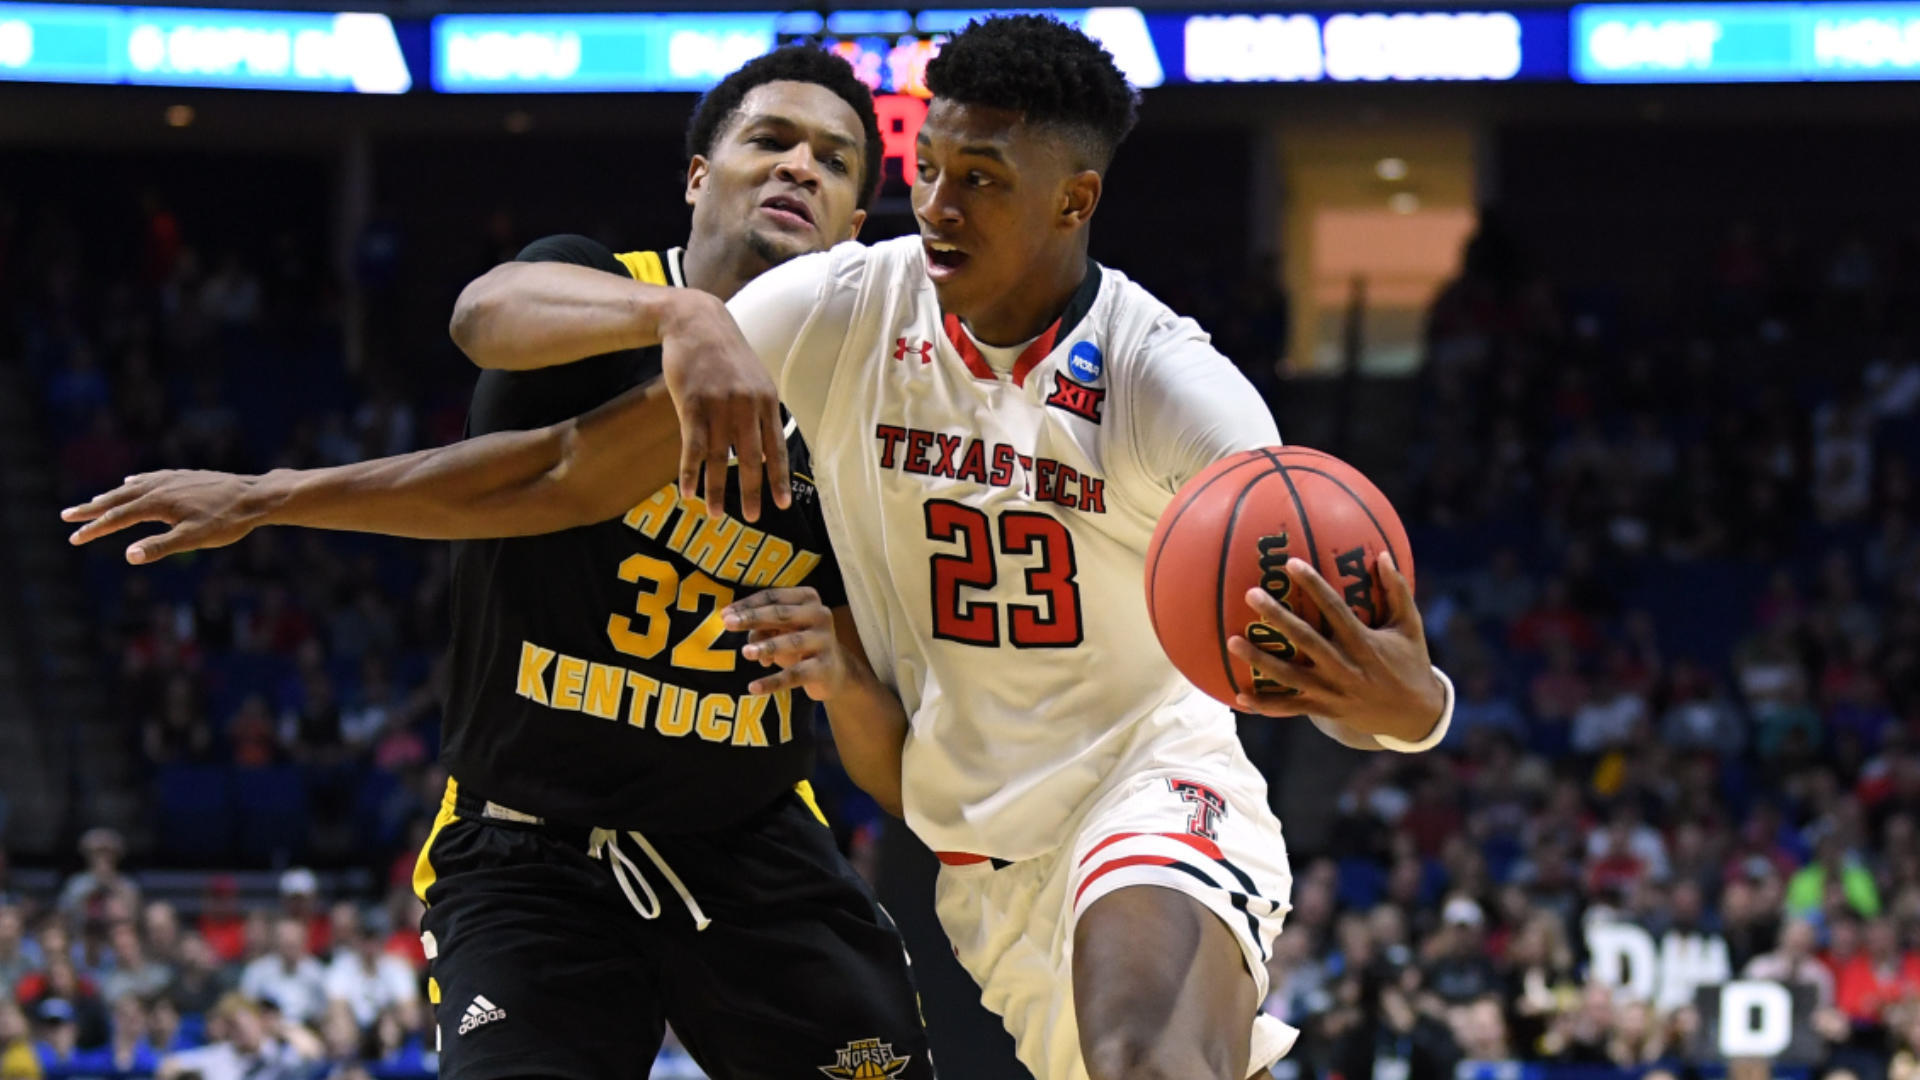 2019 NCAA Tournament bracket: Texas Tech vs. Buffalo odds, picks, predictions from proven model on 11-5 run